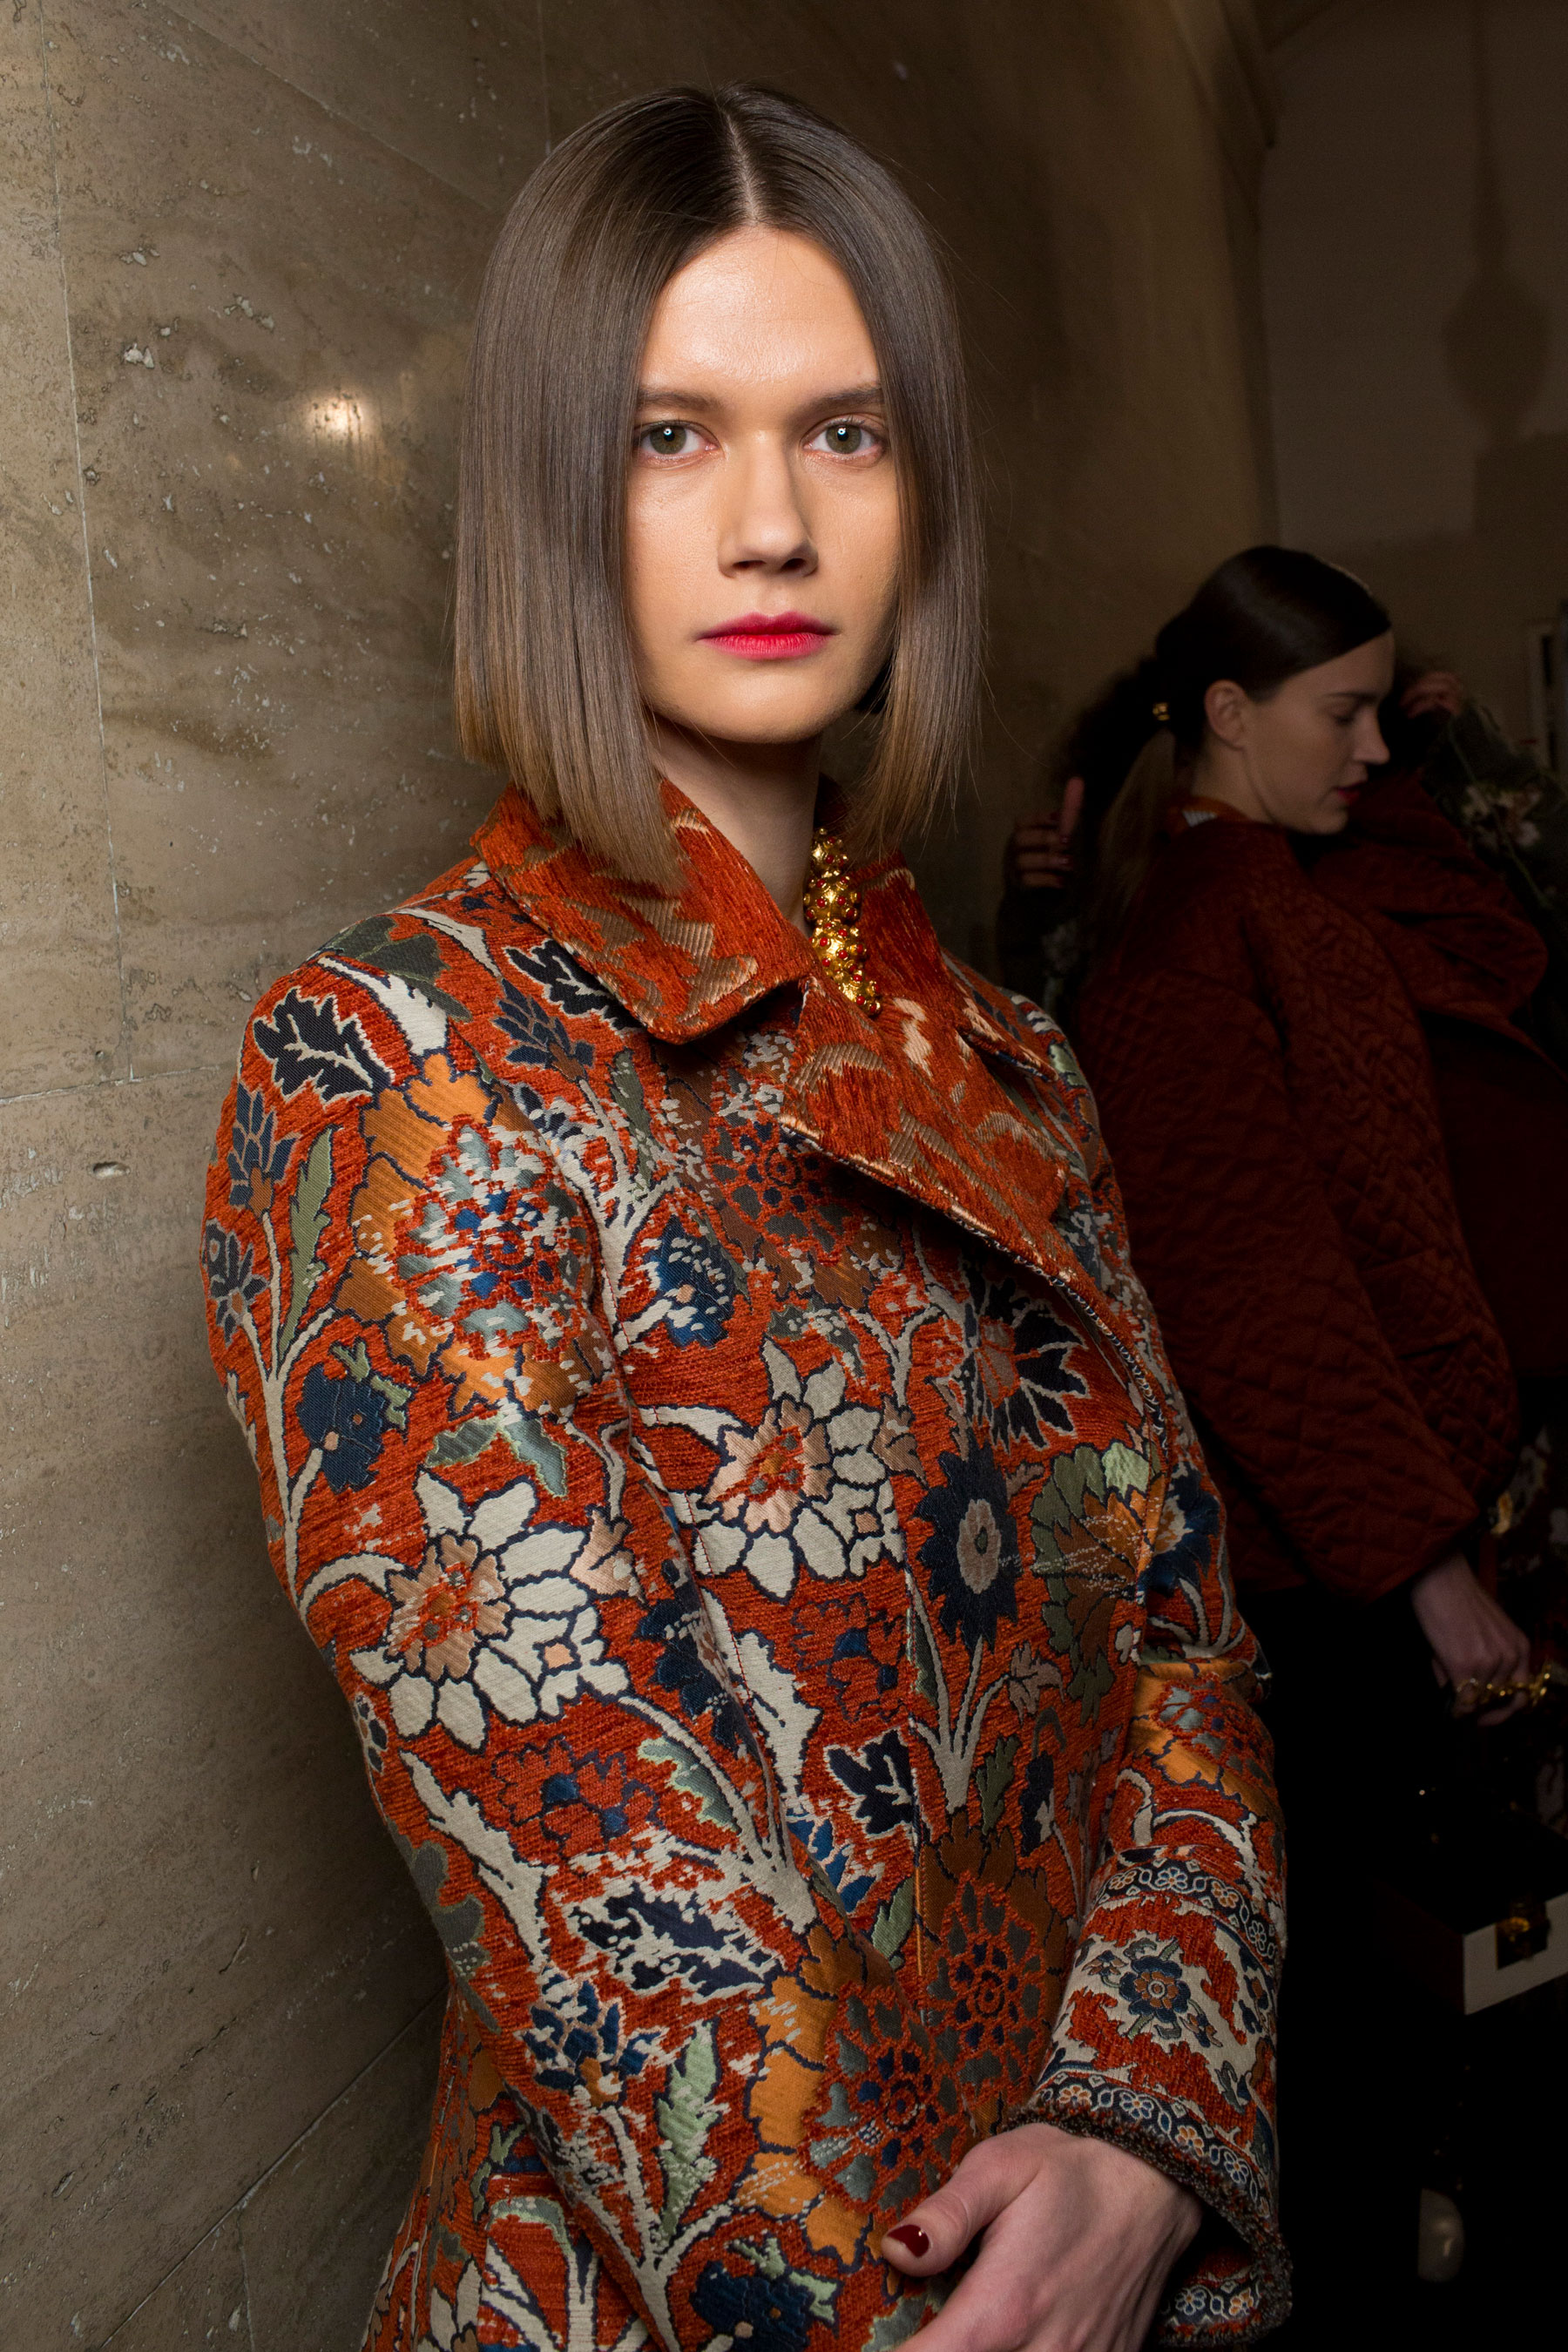 Oscar De La Renta Fall 2019 Fashion Show Backstage